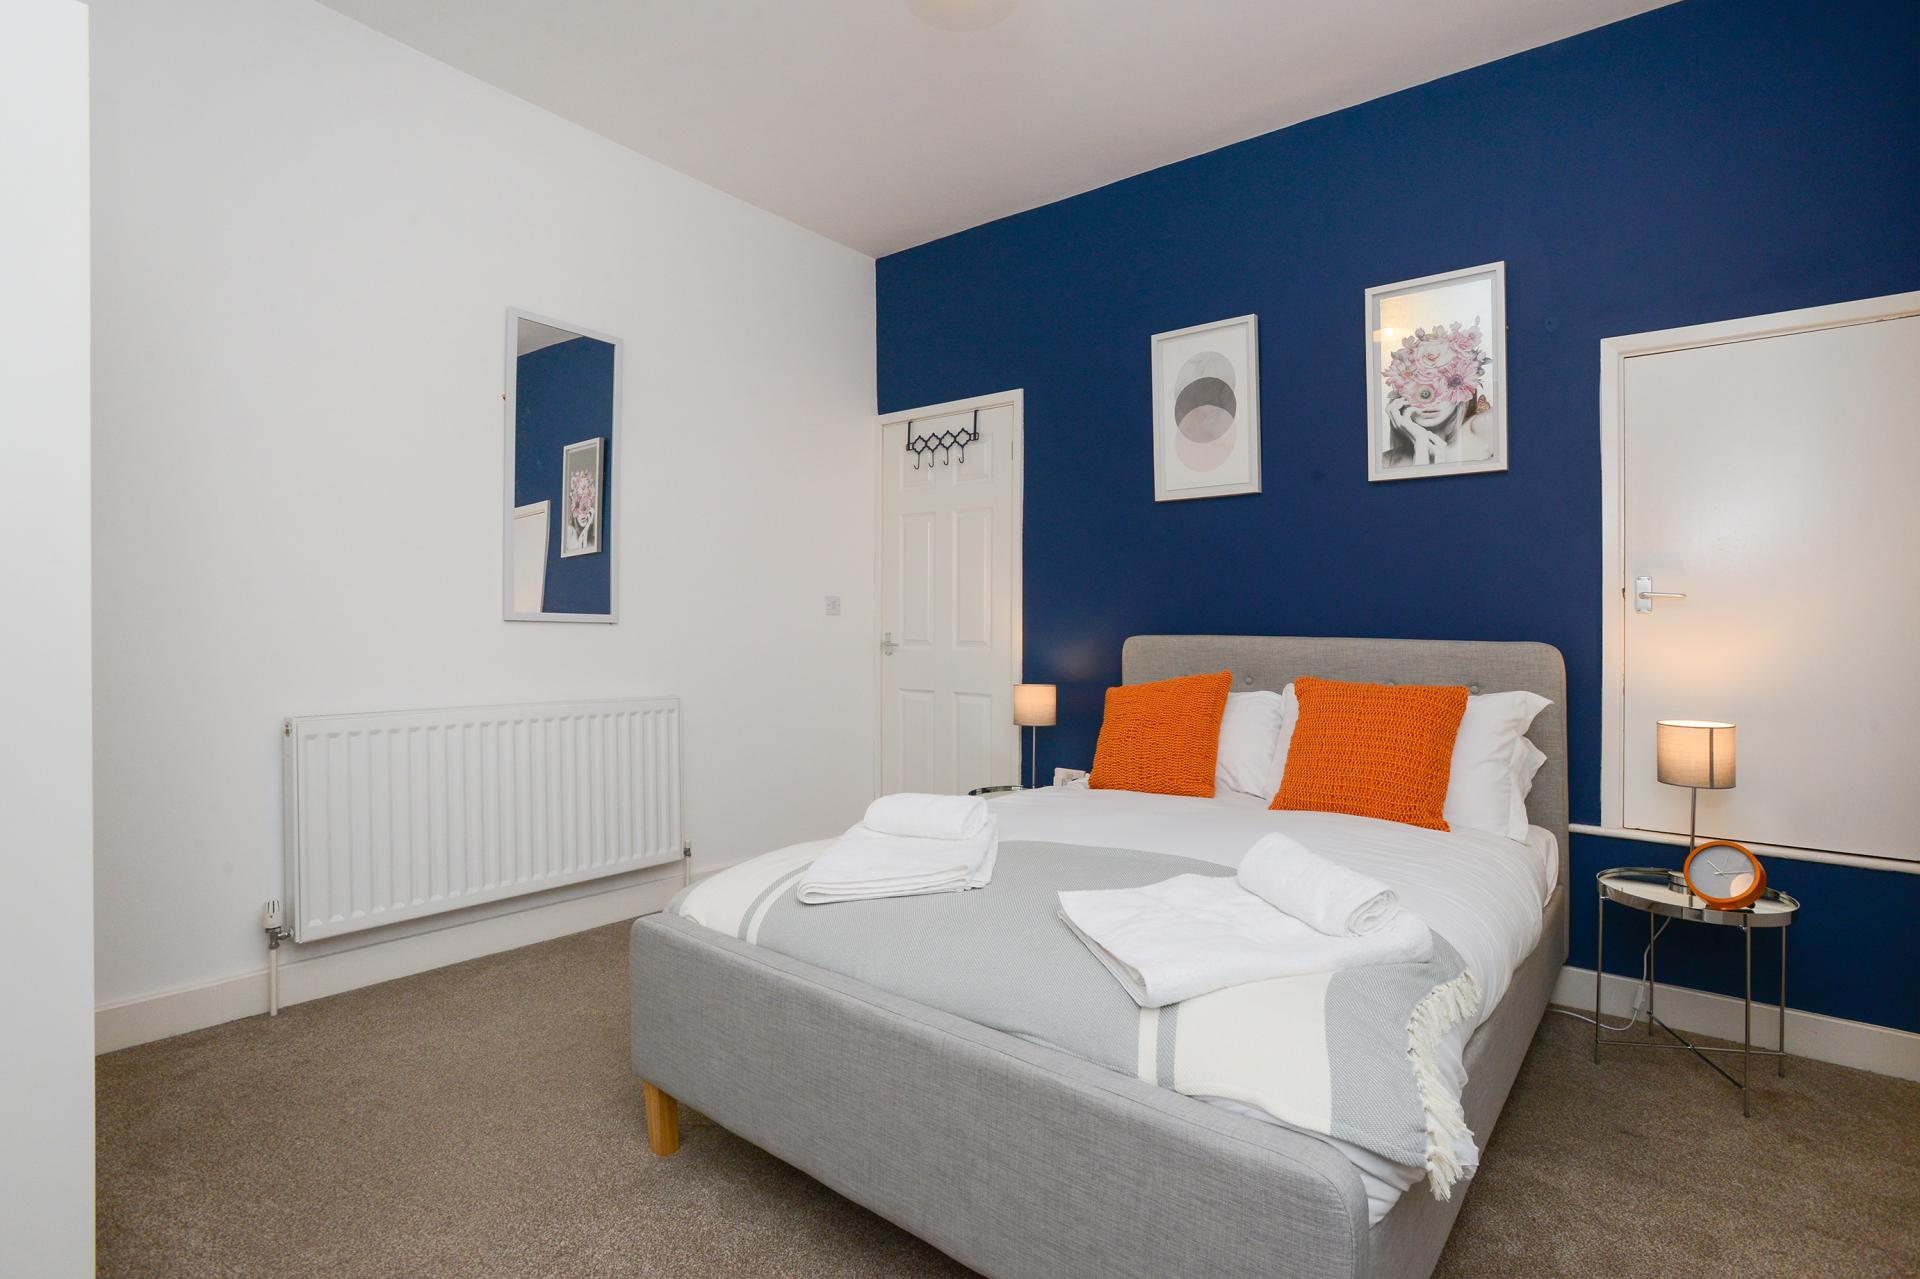 Double bed at Beeston House, Beeston, Nottingham - Citybase Apartments